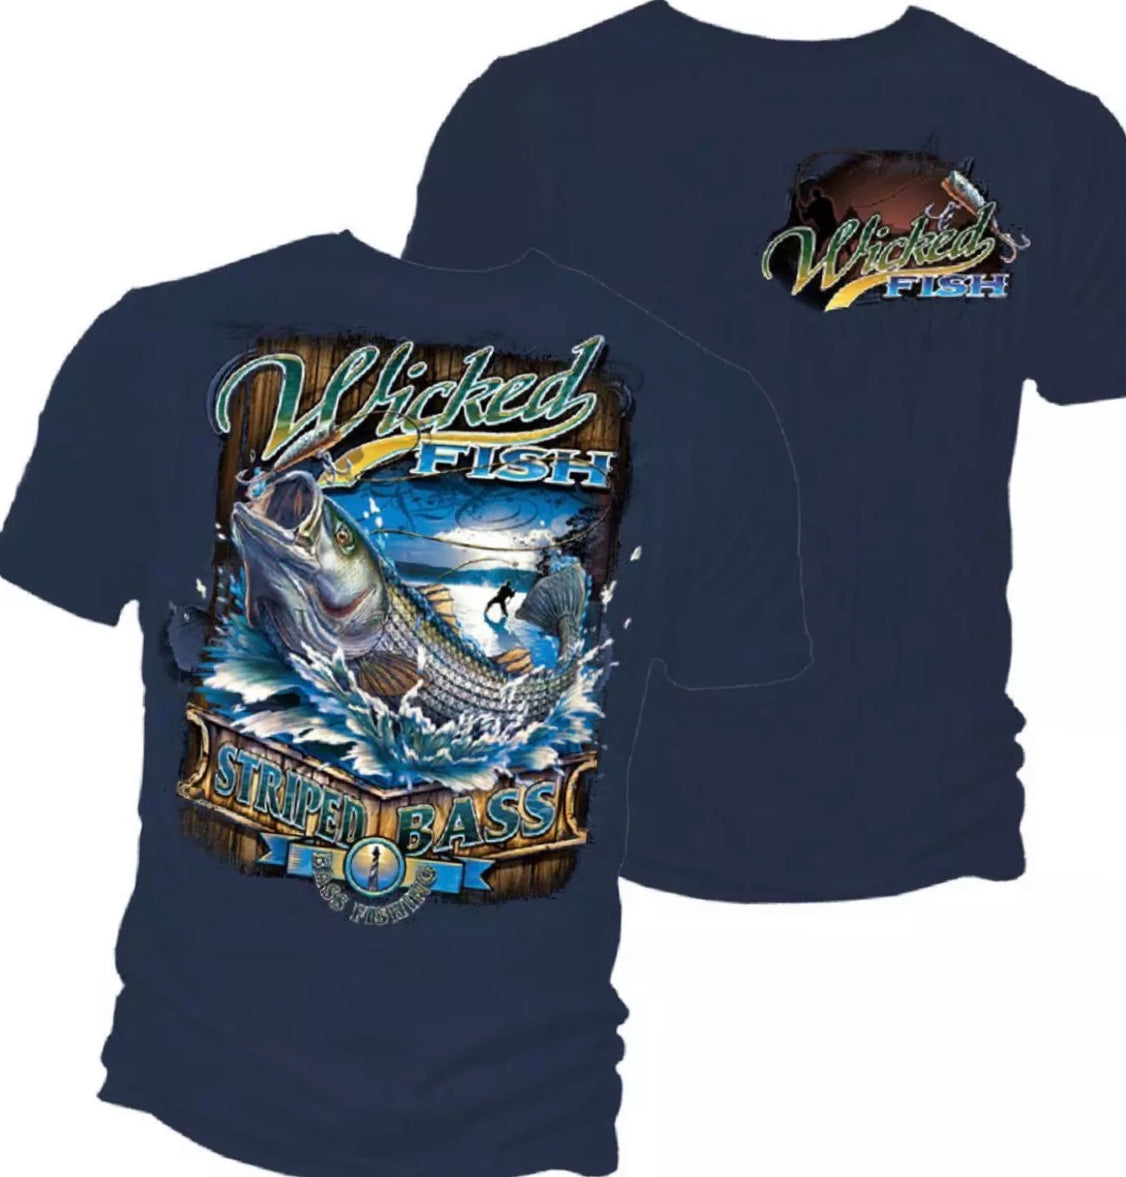 Stripe Bass Surf Fishing T-Shirts - The Wall Kids, Inc.